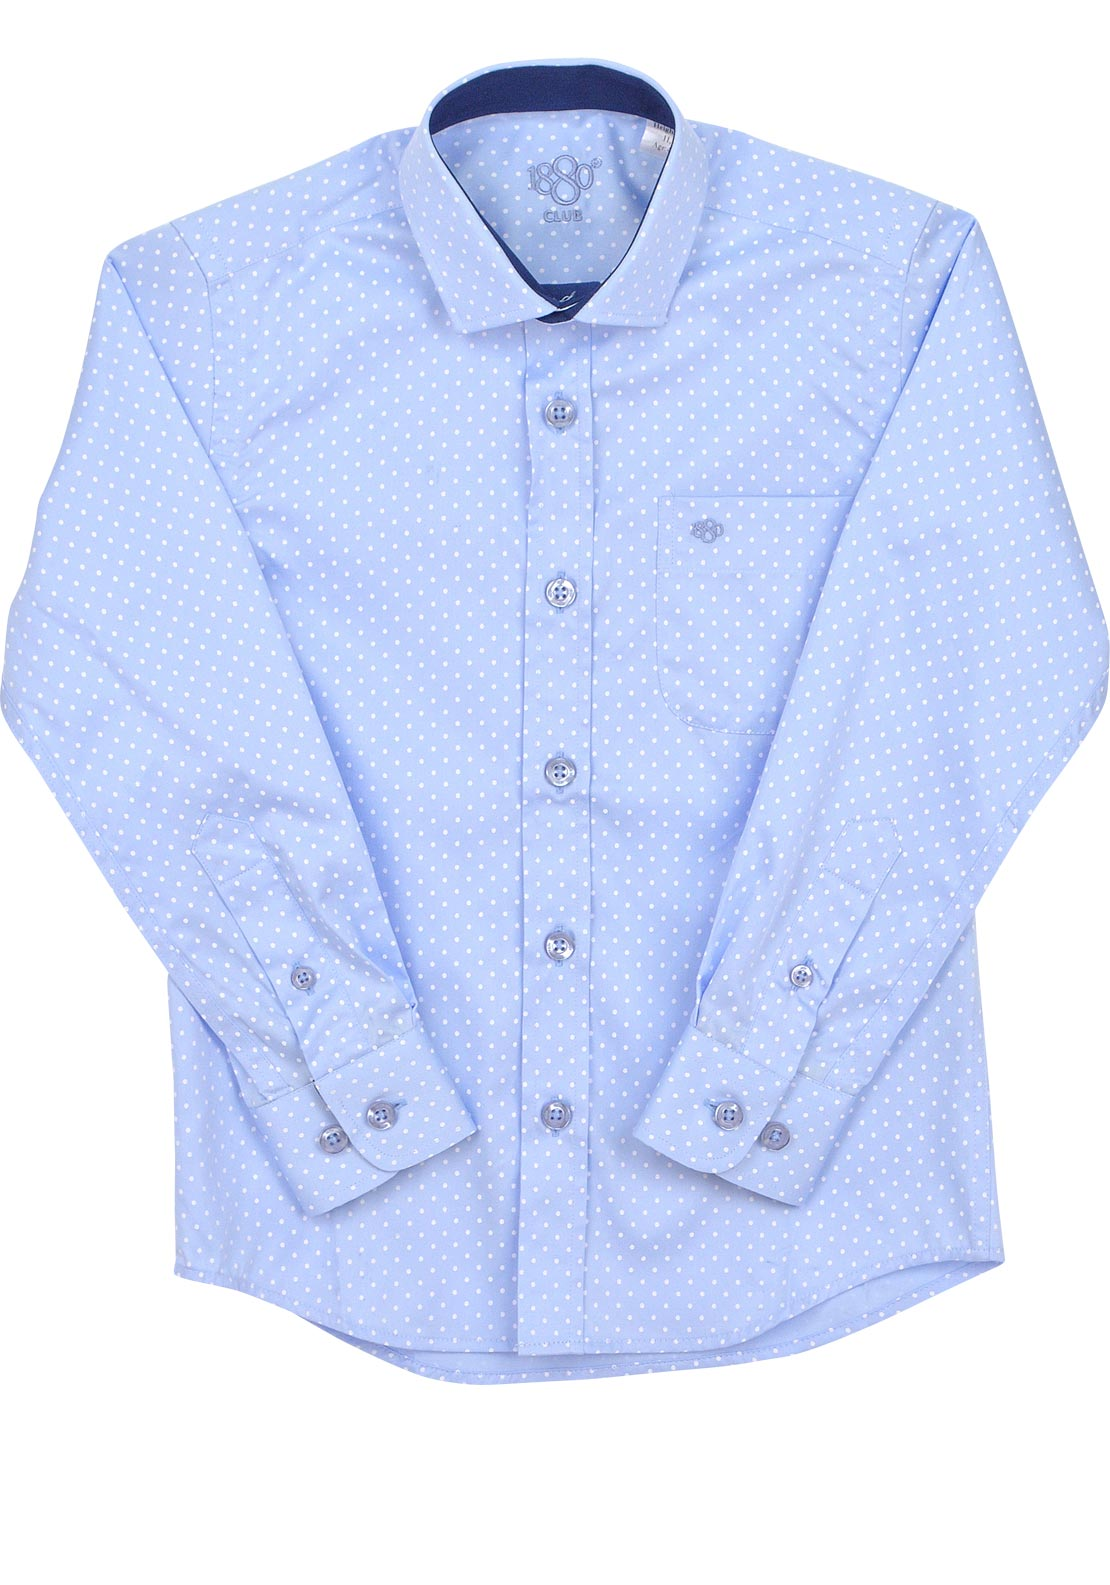 1880 Club Boys Polka Dot Shirt, Blue